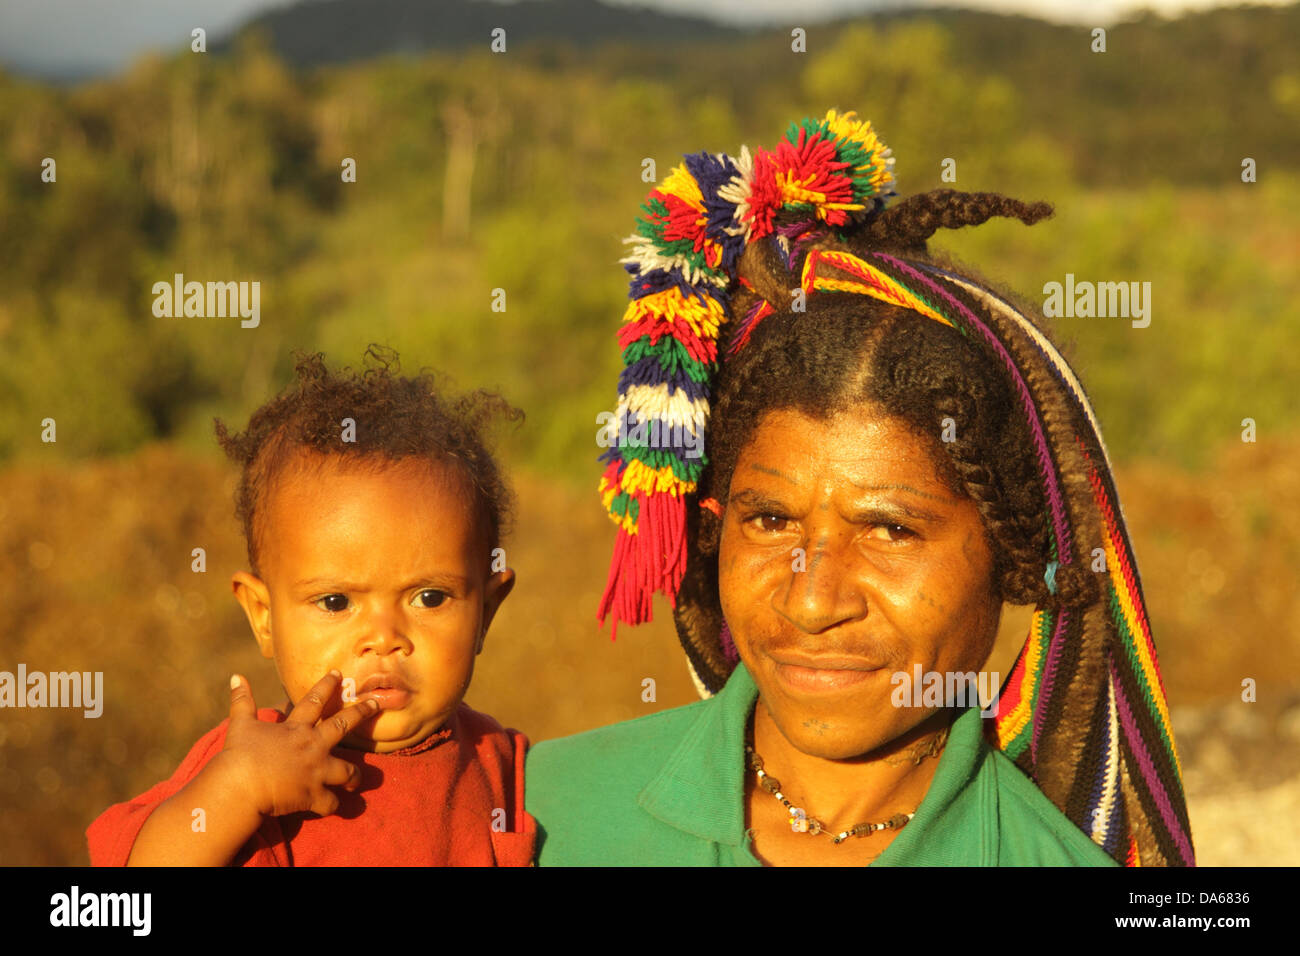 culture, ethnic, person, indigenous, people, native, tribes, tribeswoman, highlander, mother, child, Huli, Tari, - Stock Image